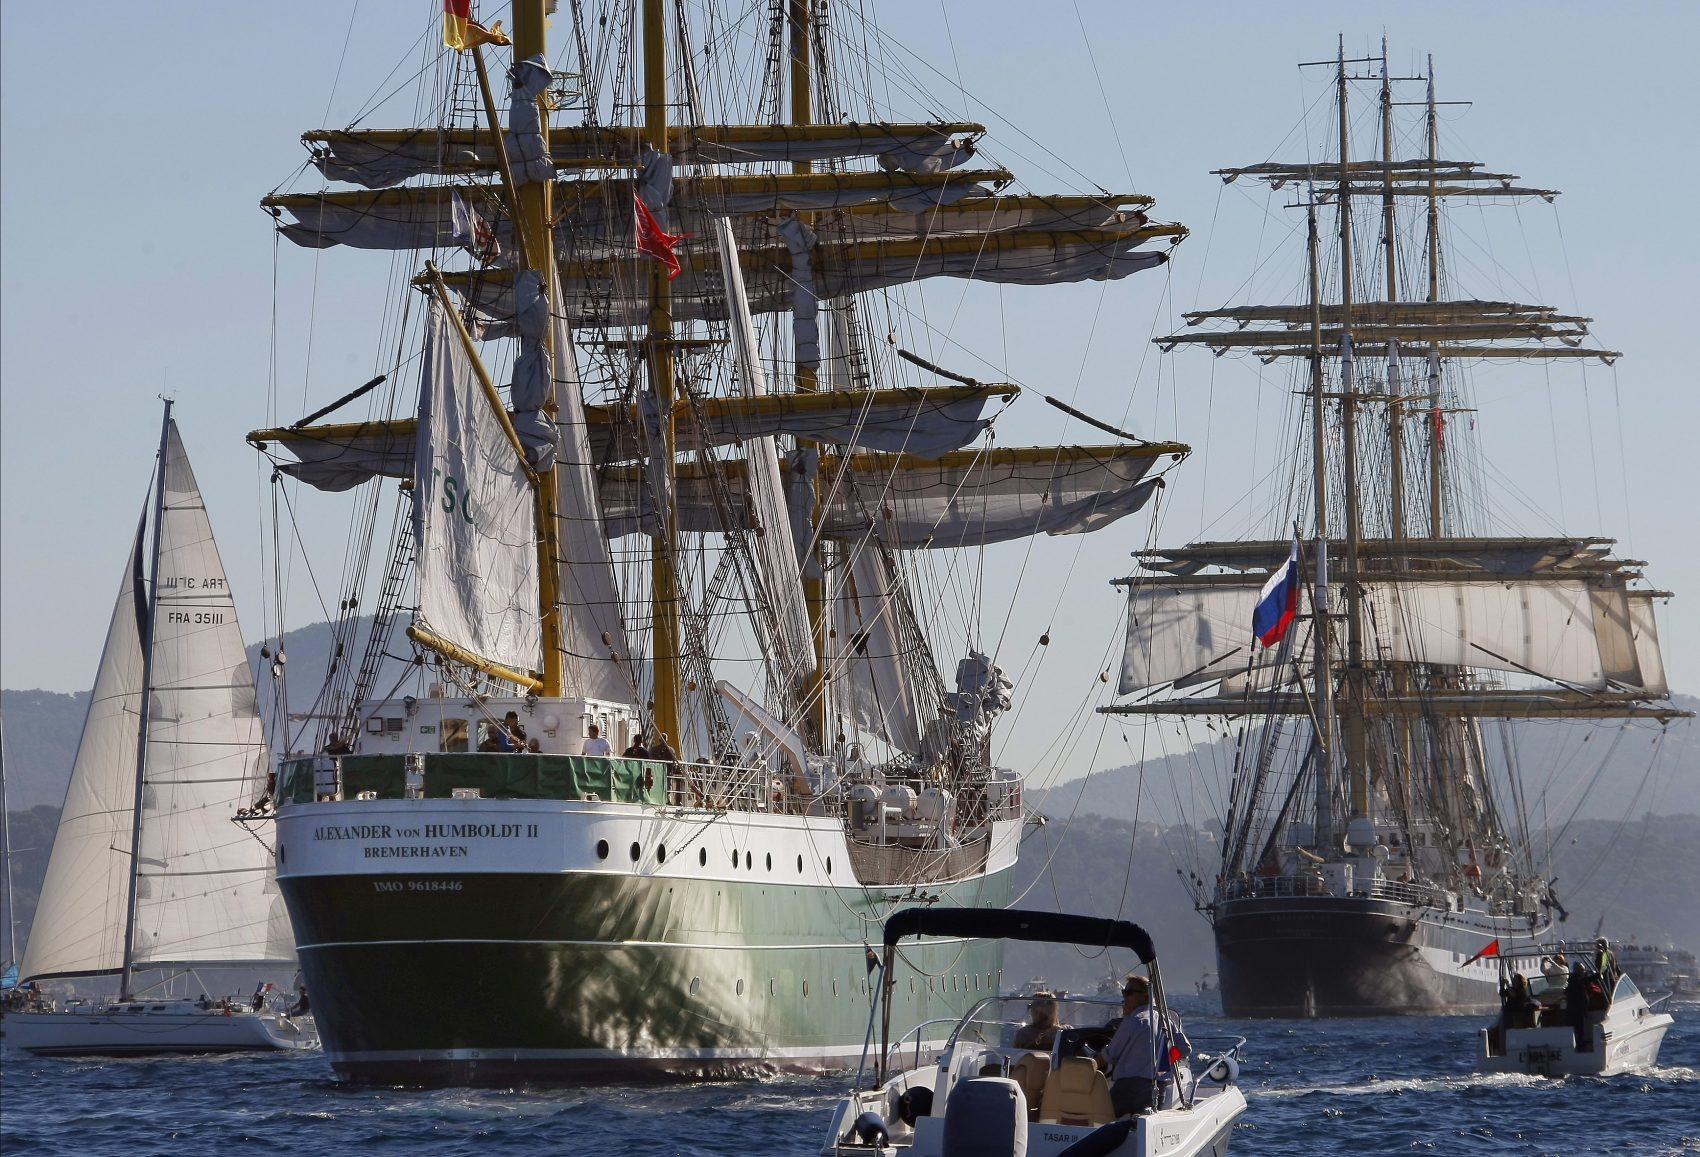 They're Shipping In: Boston Hosts More Than 50 Tall Ships ...